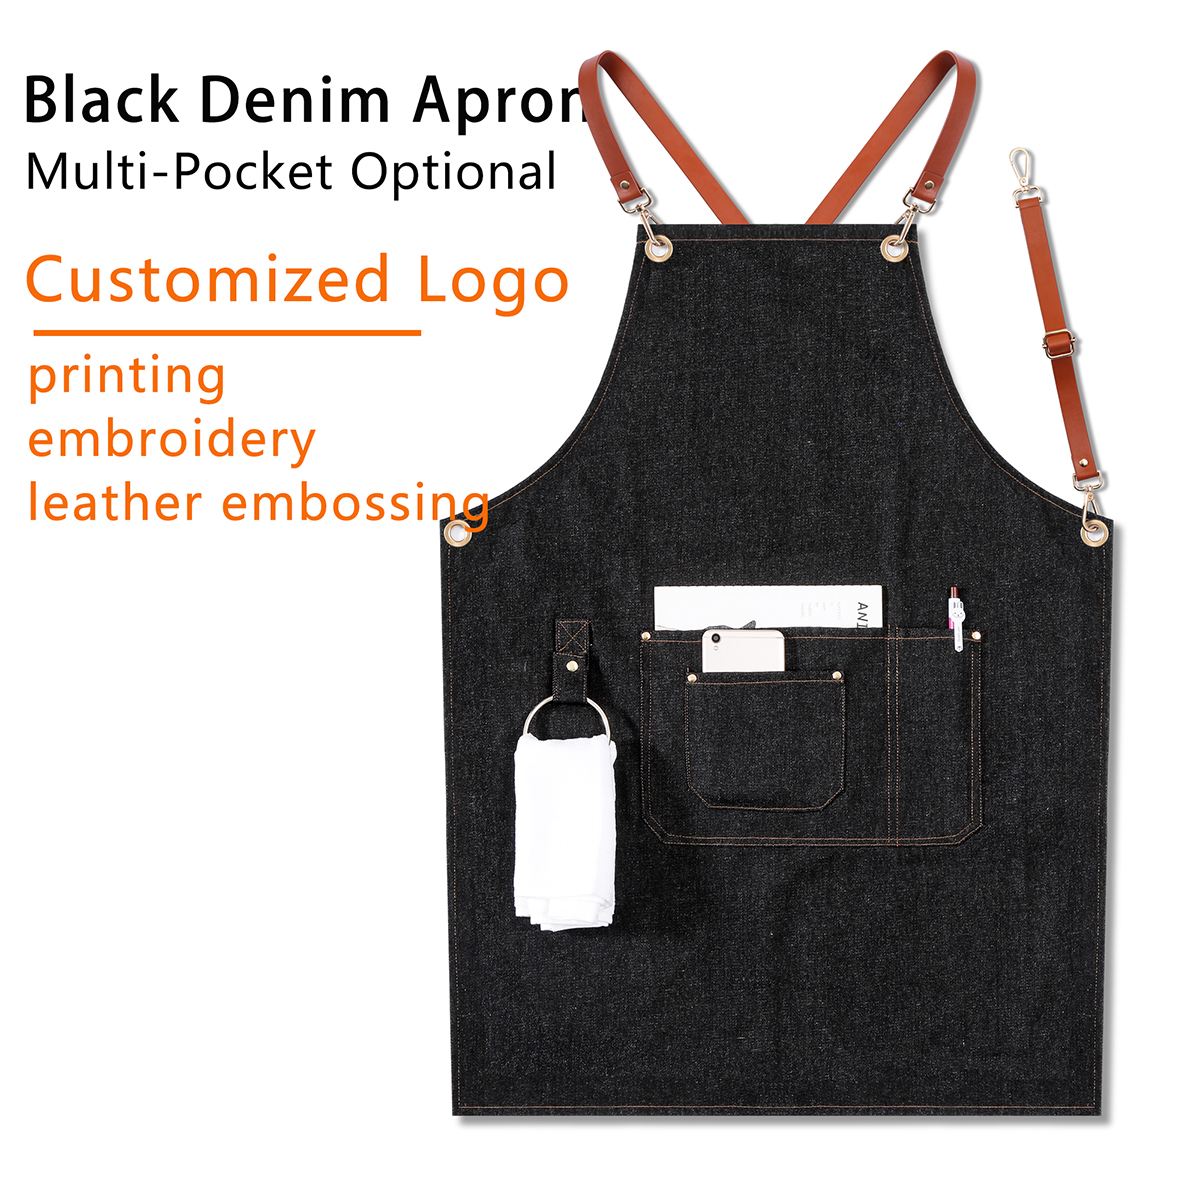 Denim BBQ Cleaning Apron Cooking Apron Kitchen Bib Chef Florist Bartender Neutral Cowboy Antifouling Pinafore Delantal WaiterDenim BBQ Cleaning Apron Cooking Apron Kitchen Bib Chef Florist Bartender Neutral Cowboy Antifouling Pinafore Delantal Waiter